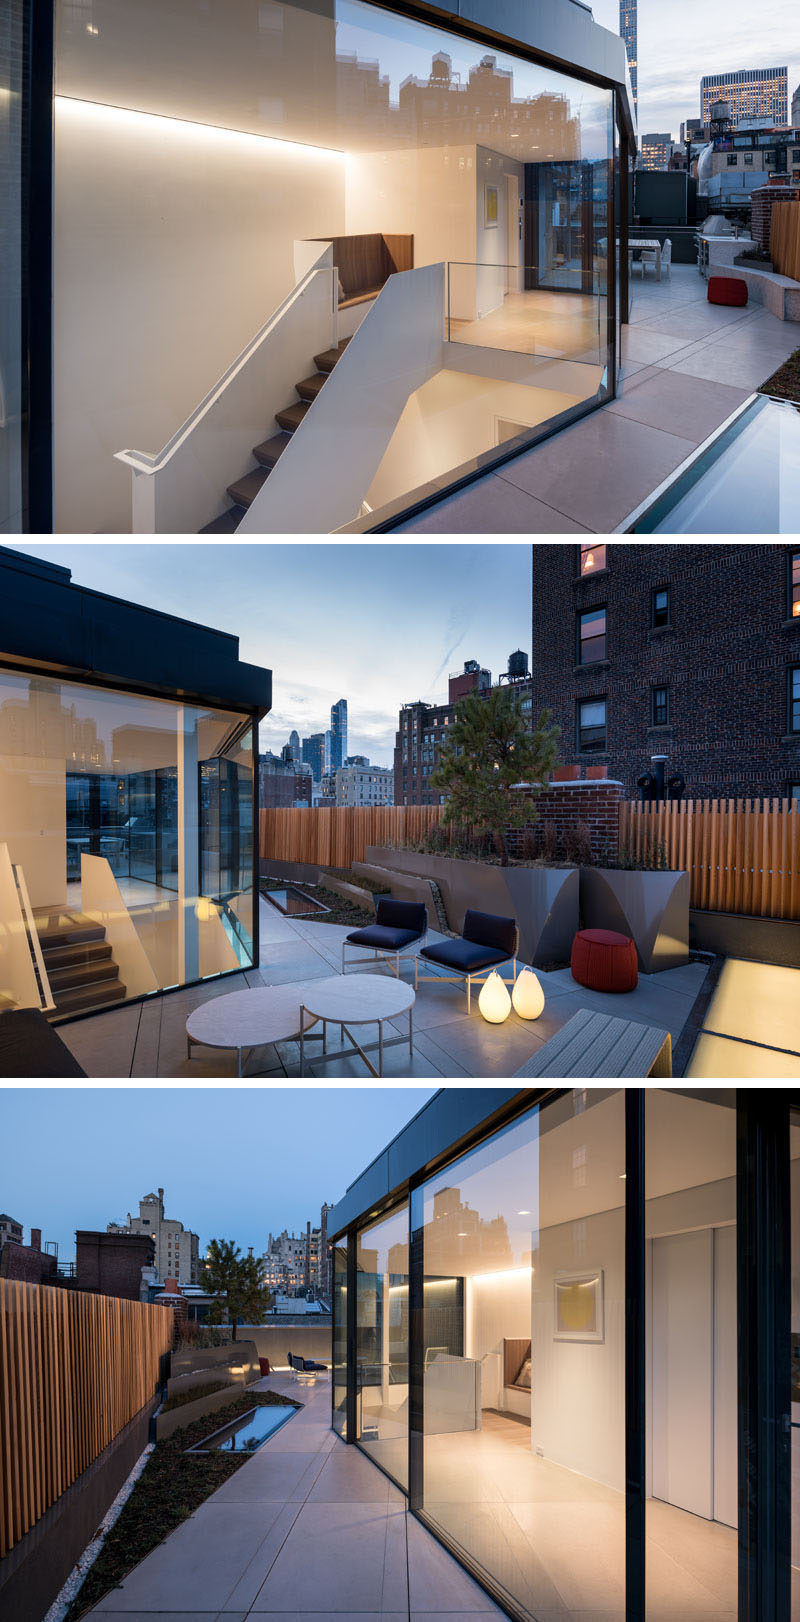 On this modern roof terrace, formed aluminum planters allow indigenous New York State plants to spill out in between the concrete pavers. The roof terrace is home to a lounge and a separate outdoor kitchen with a dining space. #RoofTerrace #Rooftop